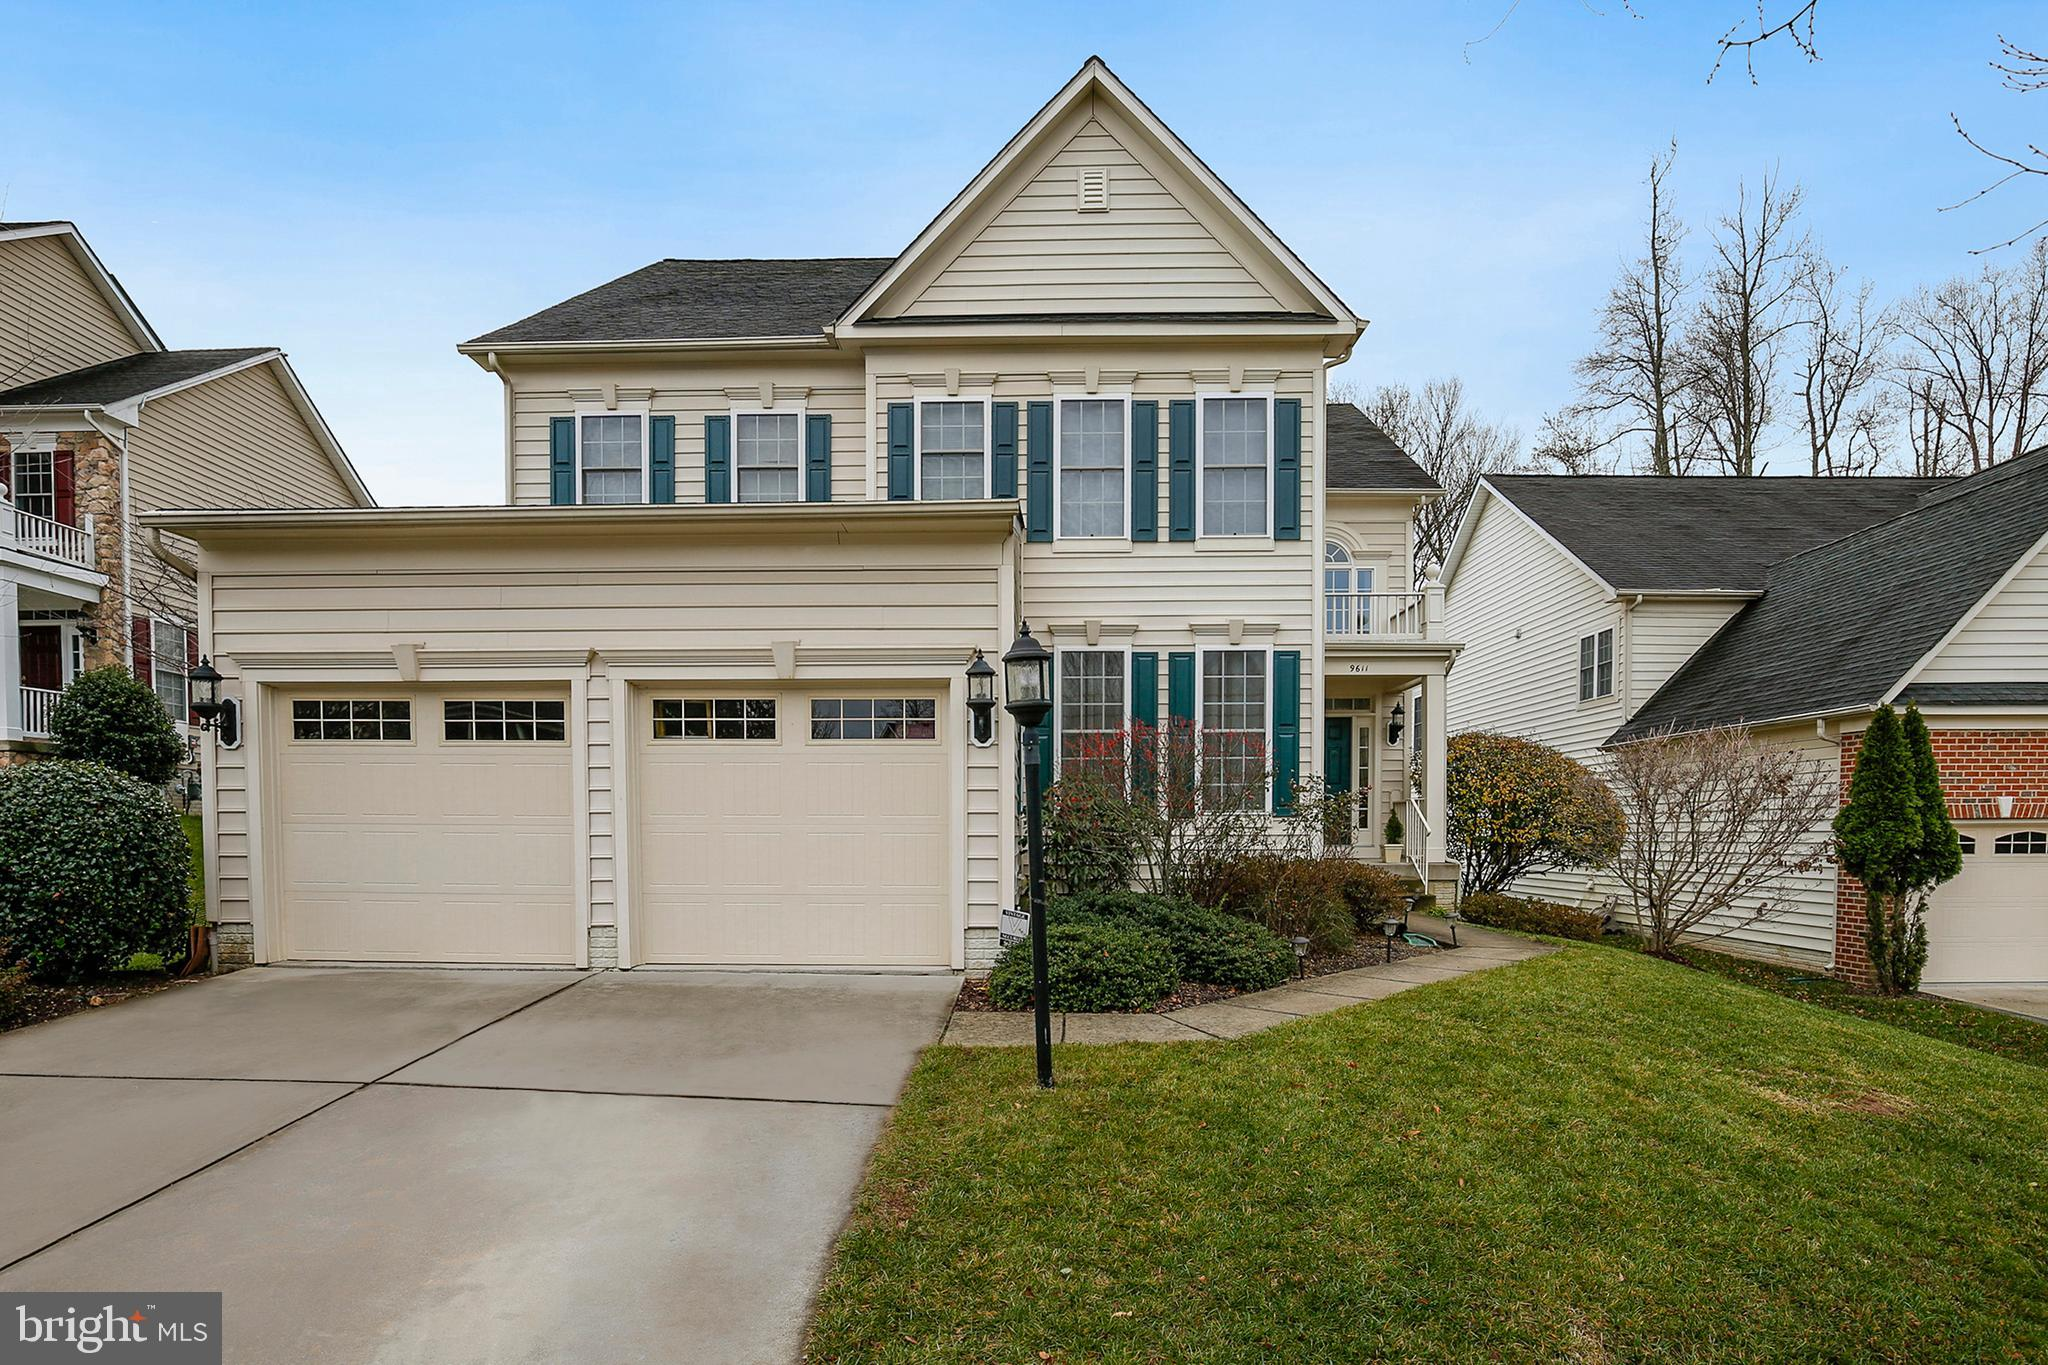 9611 BOUNDLESS SHADE TERRACE, LAUREL, MD 20723